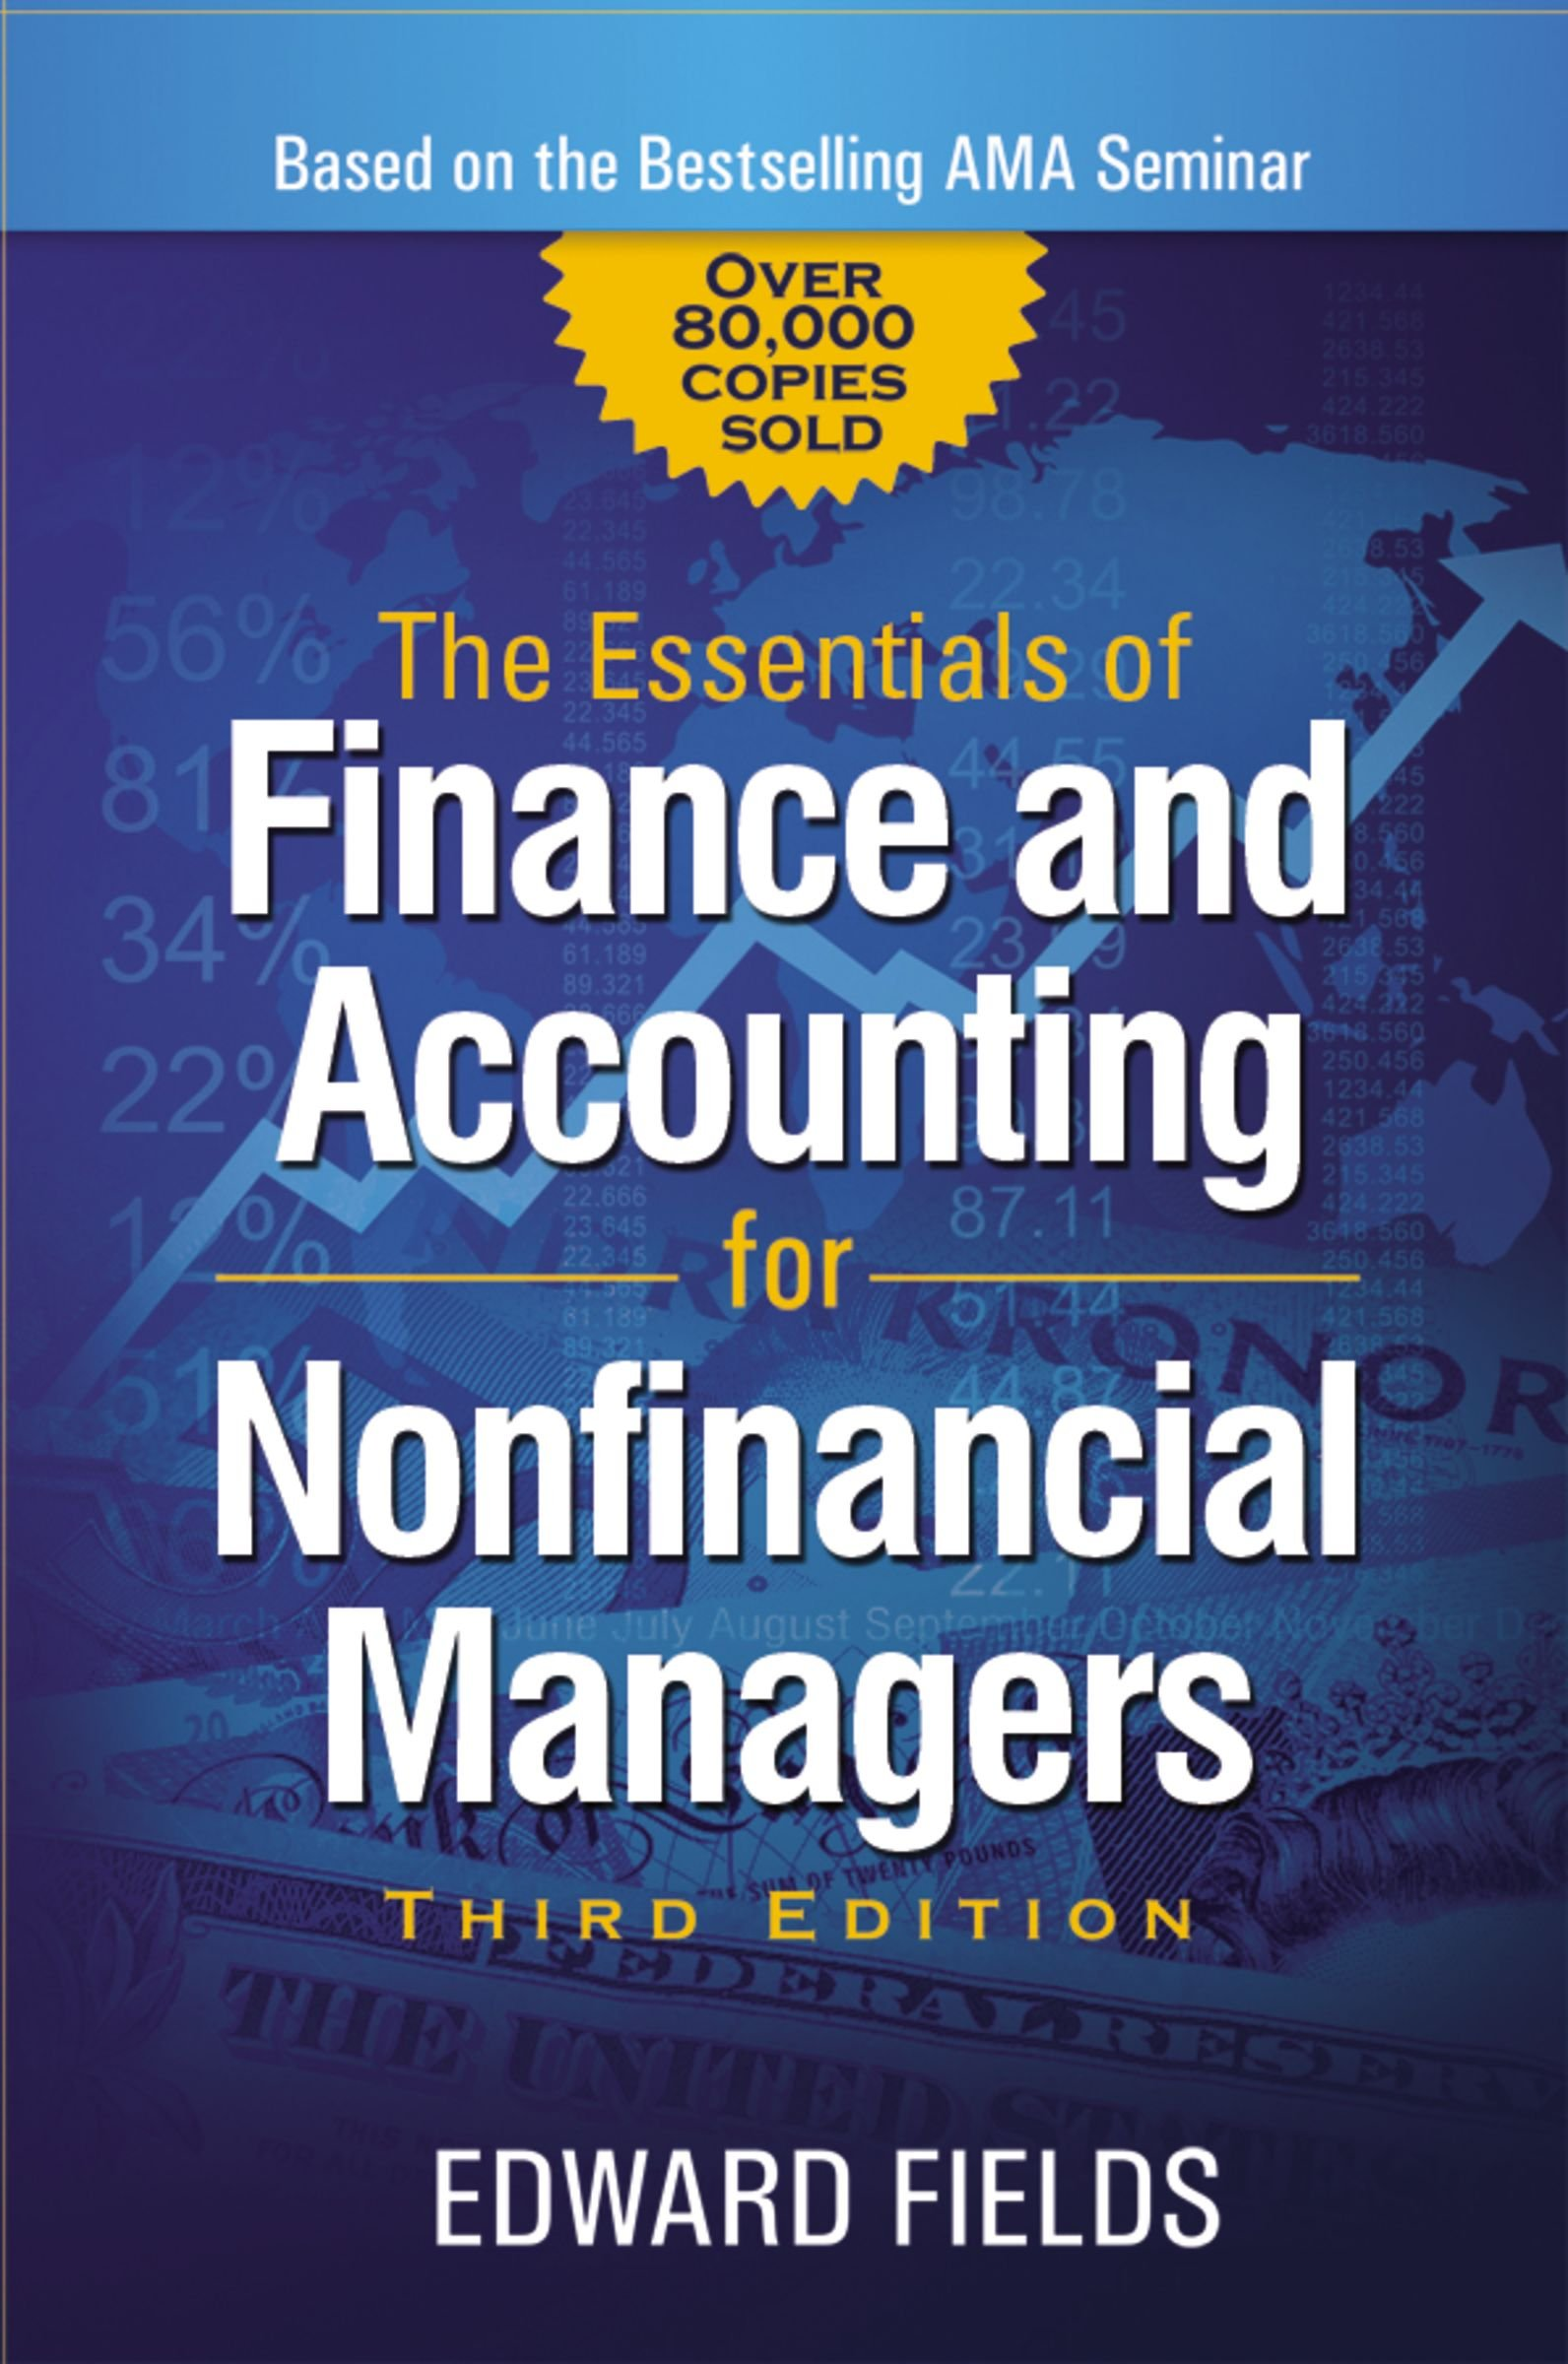 The Essentials of Finance and Accounting for Nonfinancial Managers